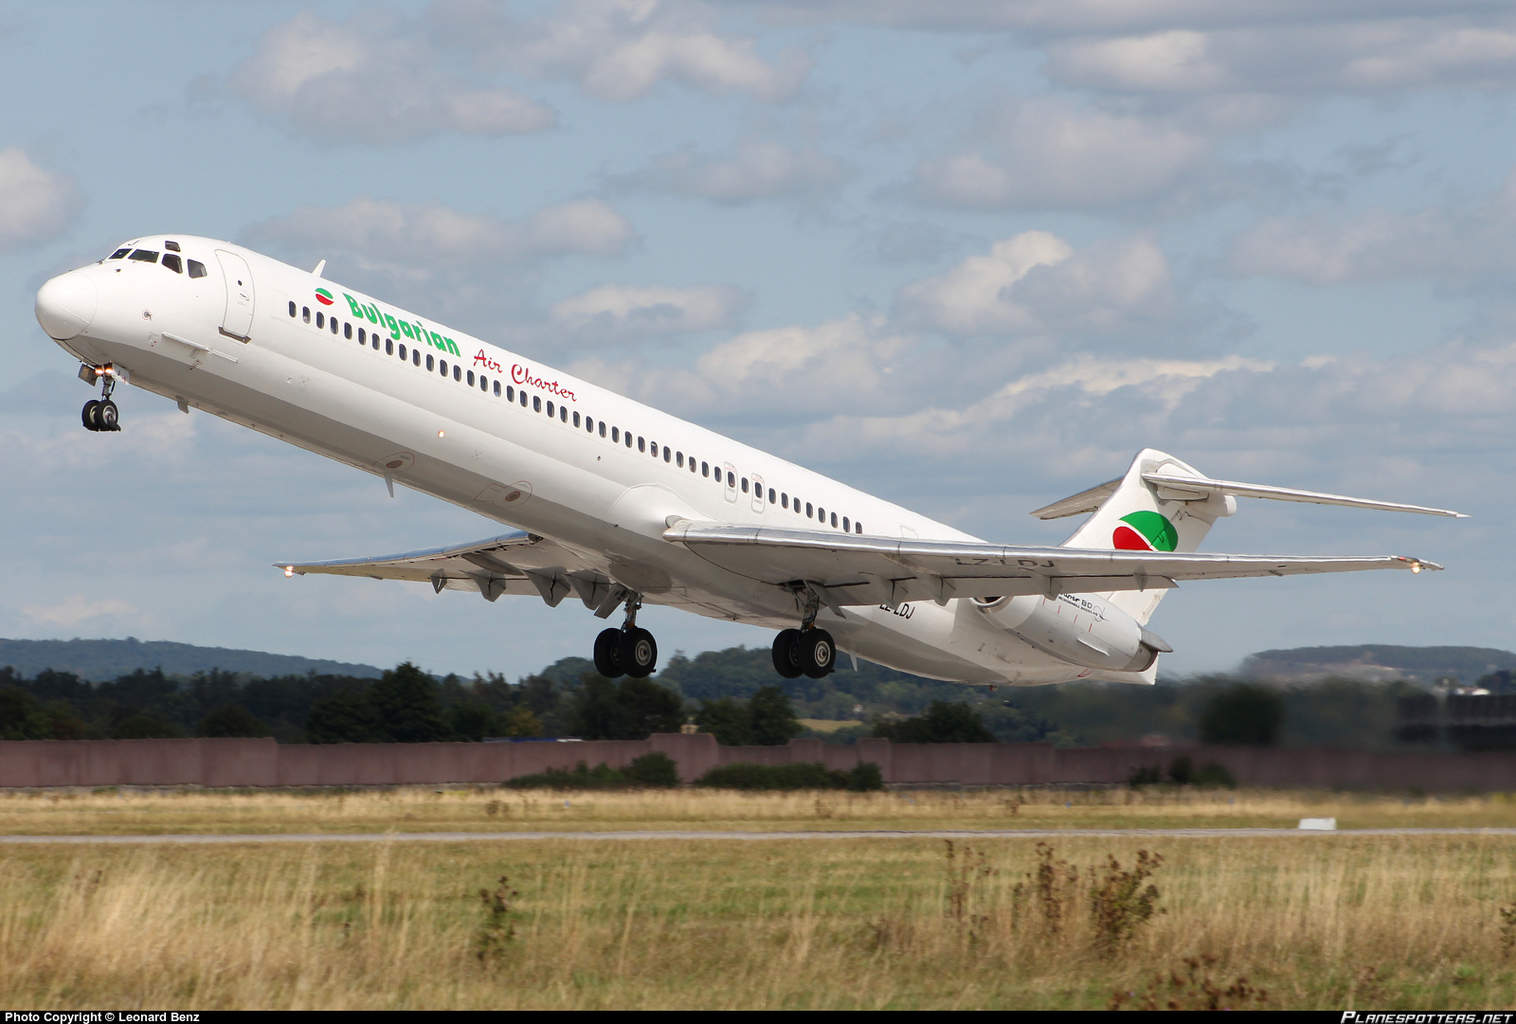 Bulgarian Air Charter MD-82 shuts engine down inflight